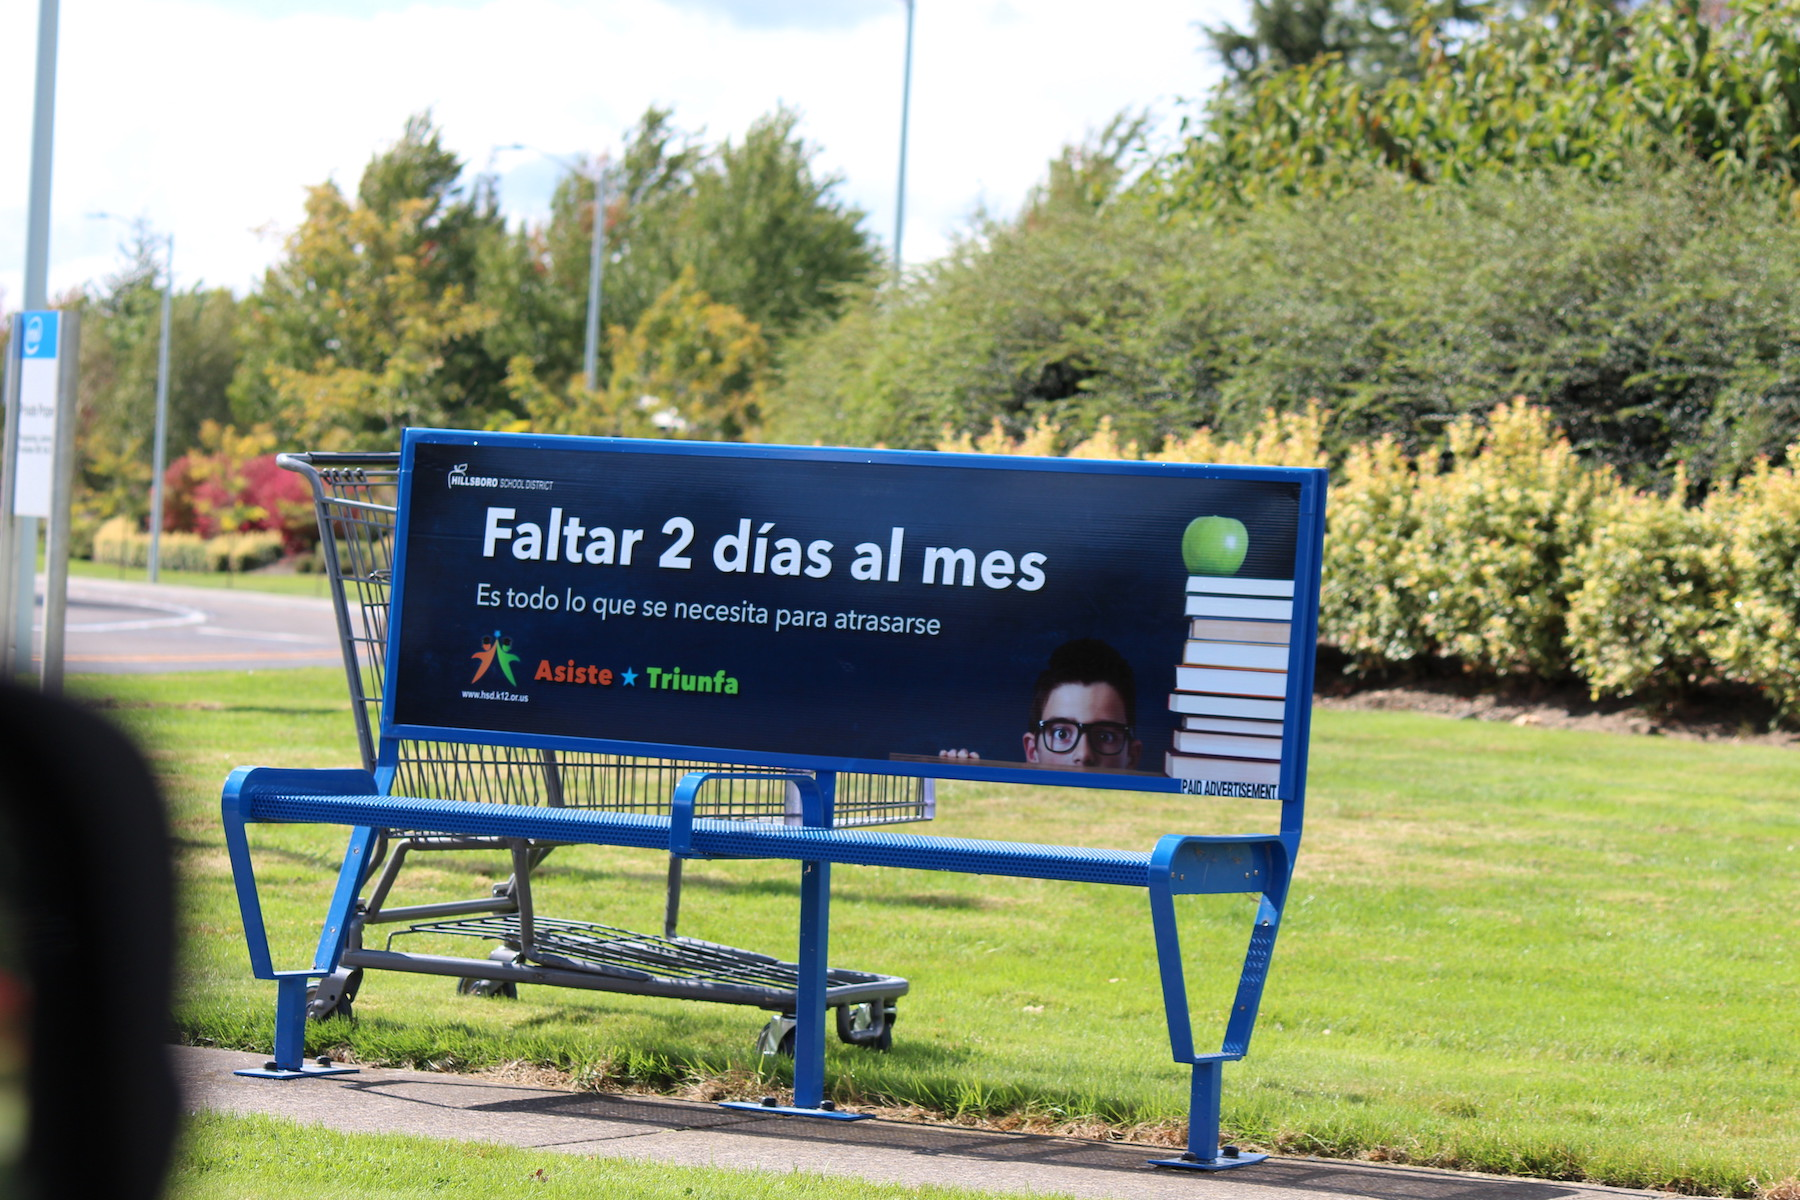 bus bench ad 5